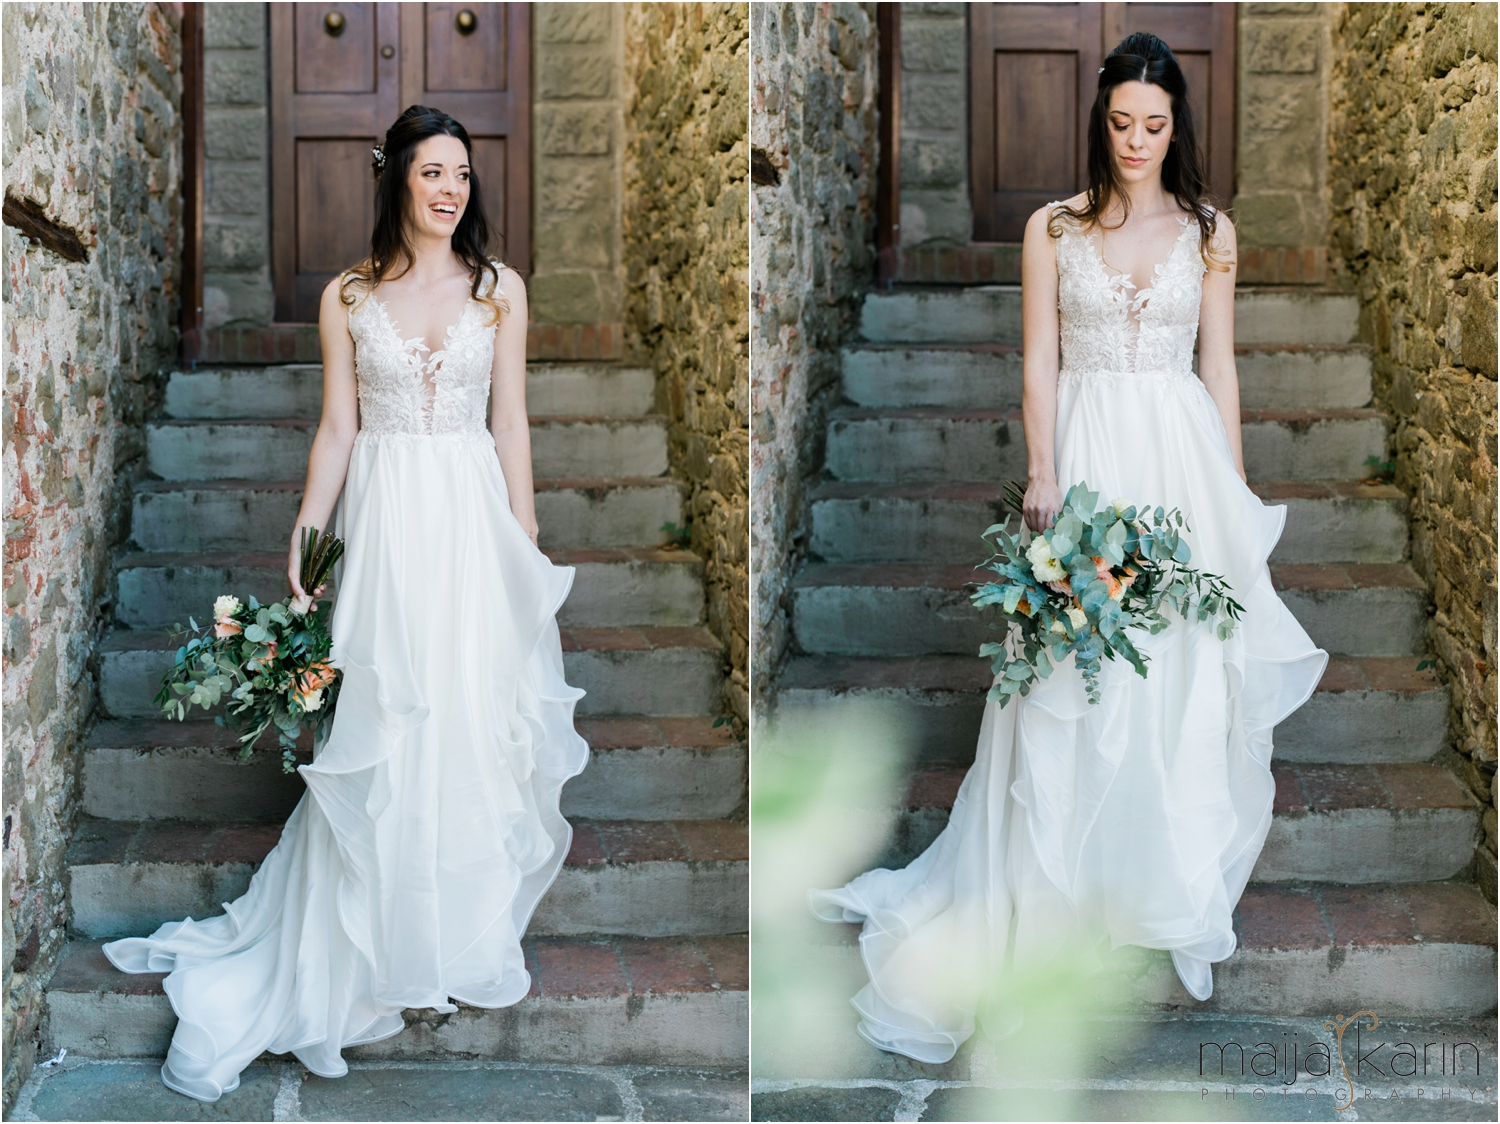 Castelvecchi-Tuscany-Wedding-Maija-Karin-Photography_0022.jpg